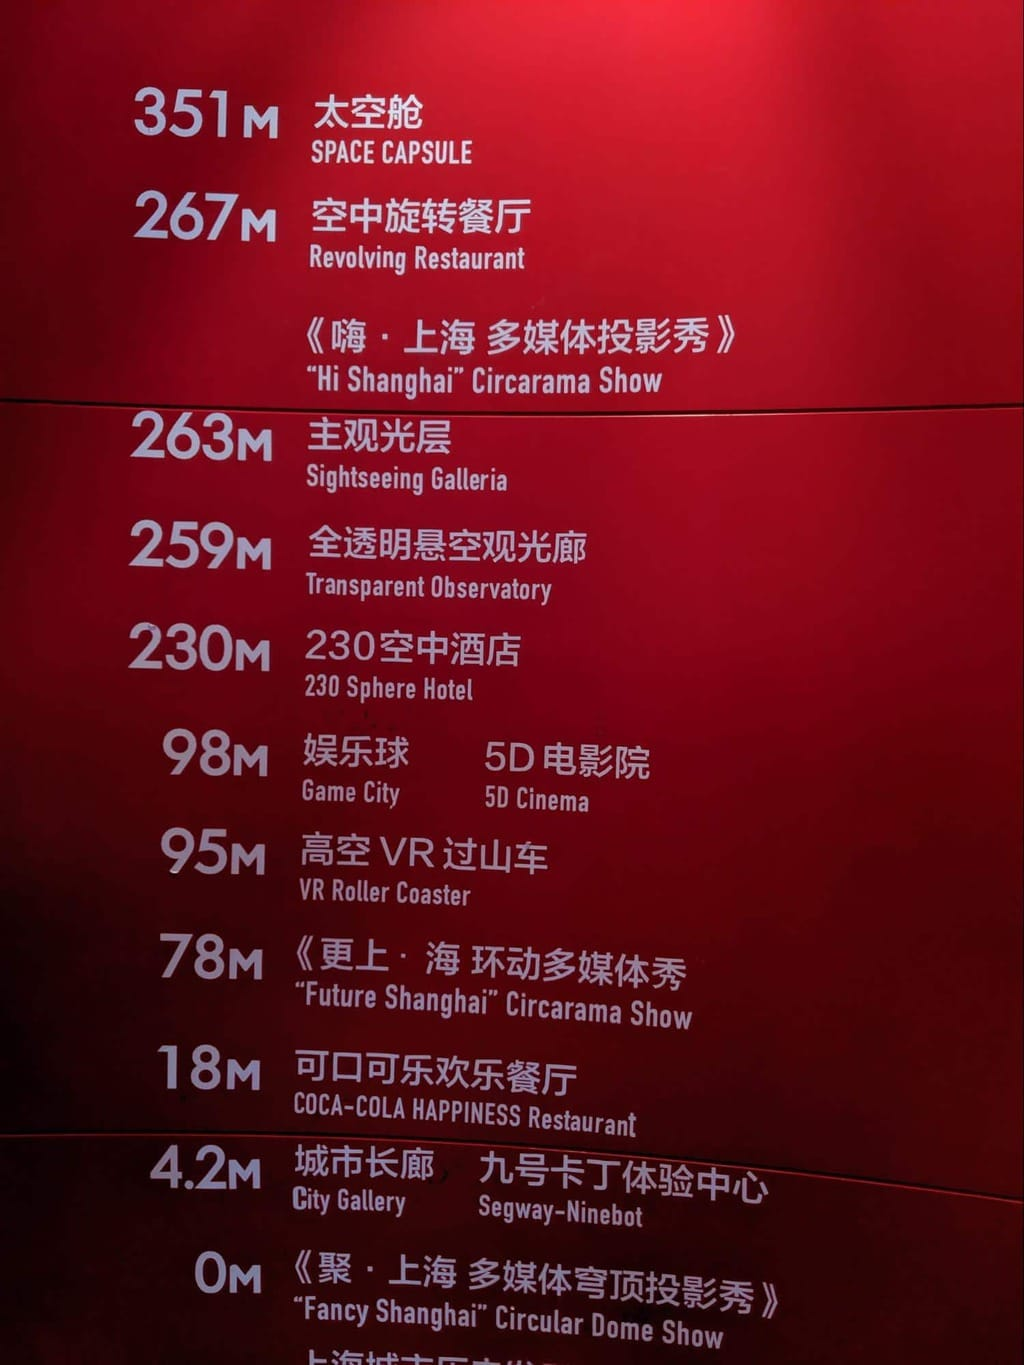 The Oriental Pearl Tower information